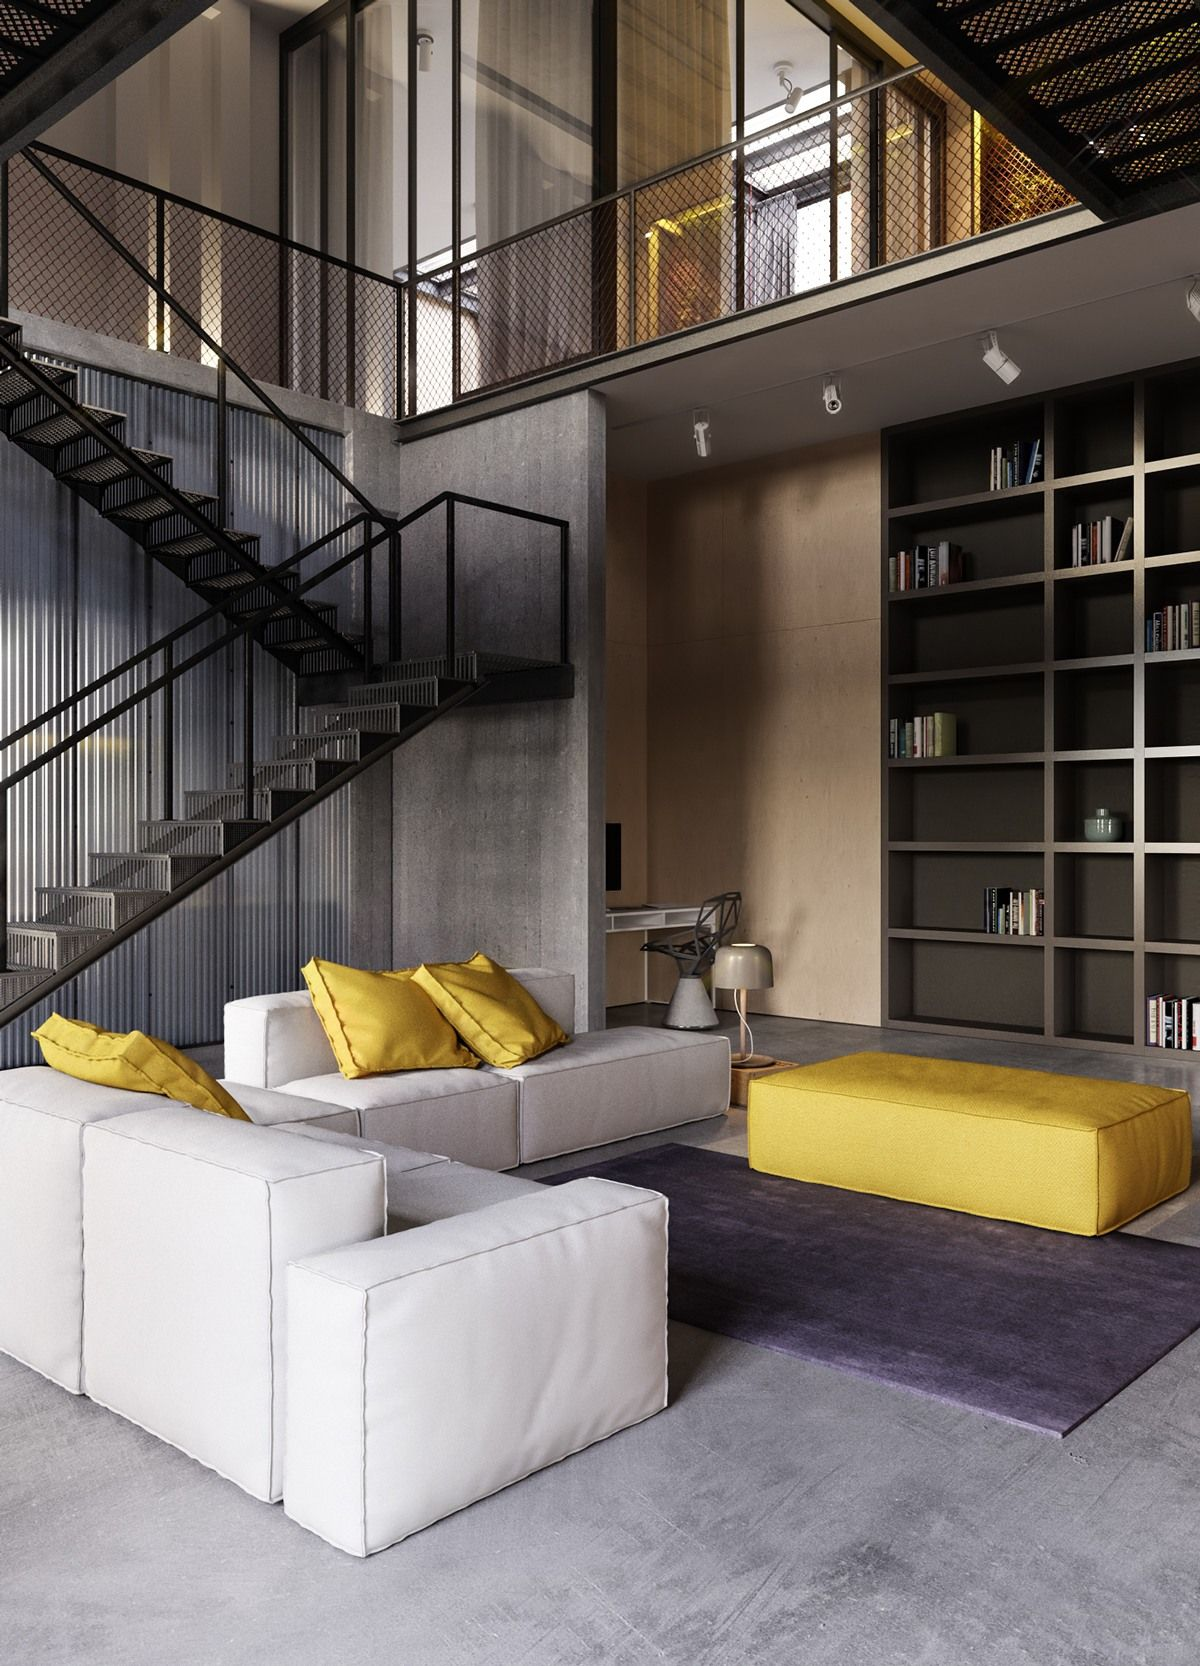 Concrete, coated steel, and unfinished wood are among the perfect ingredients that flavor this industrial interior. Unlike many industrial interiors, this one doesn't shy away from color – it makes immediate impression with a cool gray and yellow color theme, highlighting the incredible energy of the design.